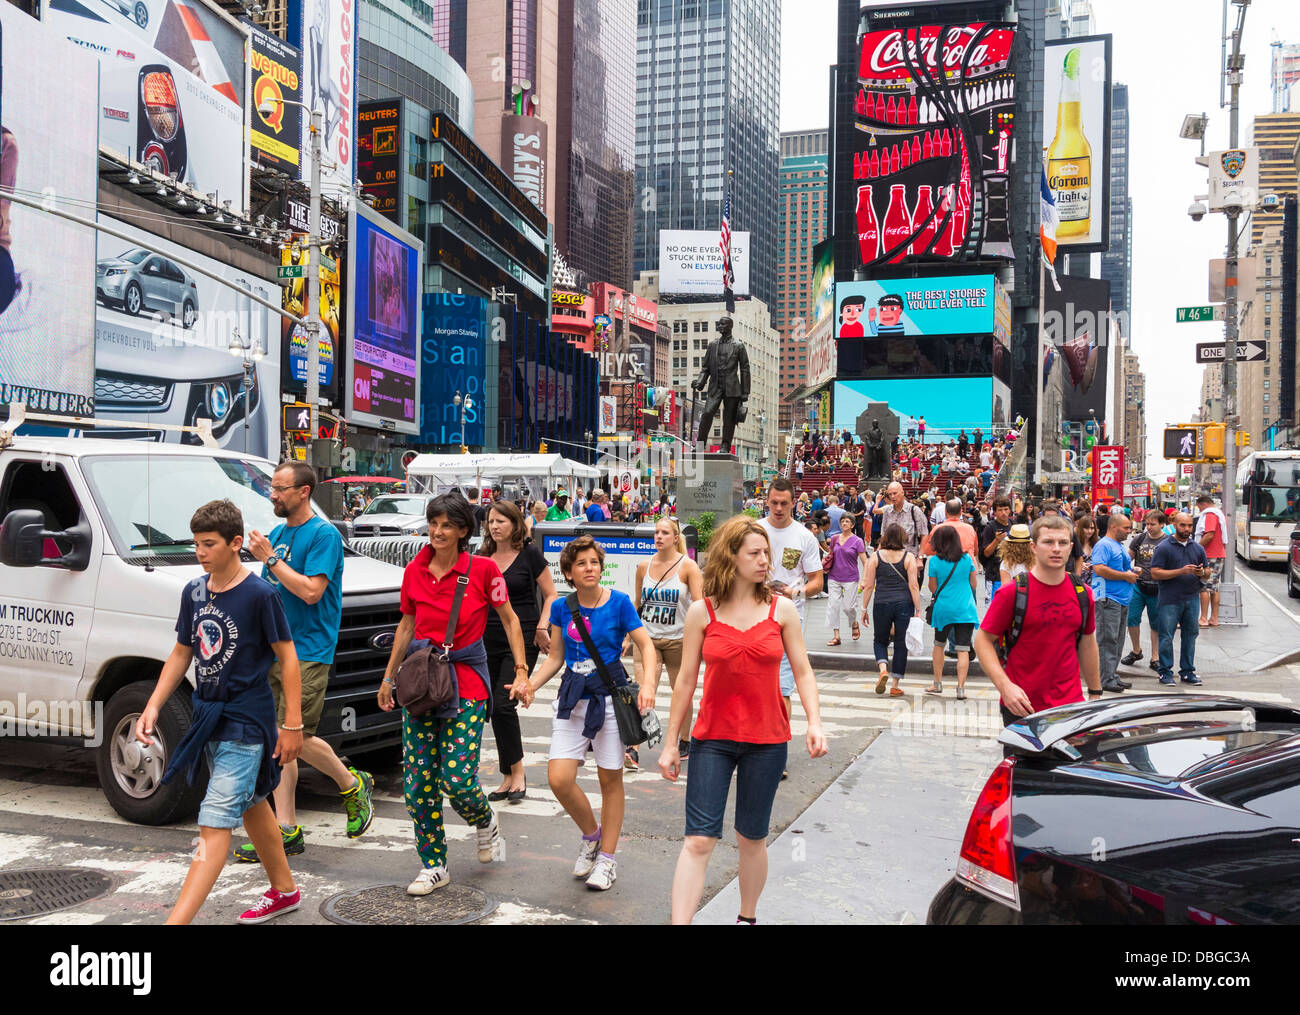 Busy Times Square in Manhattan, New York City street with crowds of people / tourists in summer - Stock Image